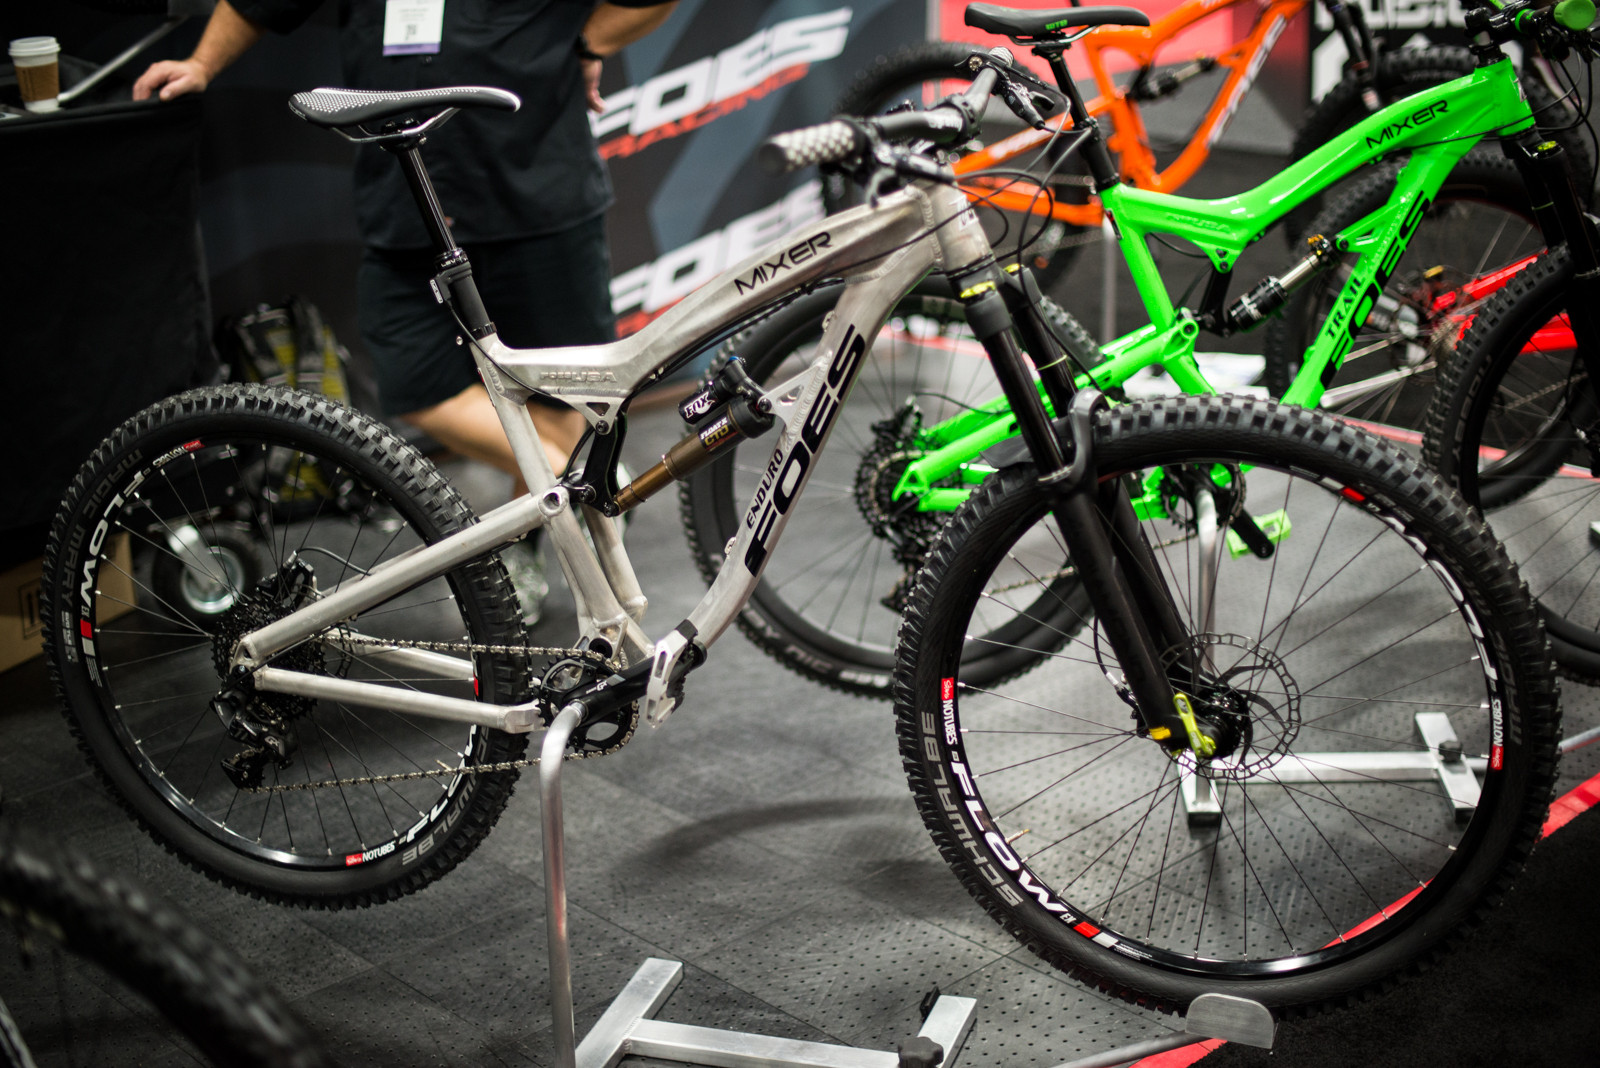 2016 Foes Mixer Trail & Enduro - 2016 Trail and Enduro Bikes at Interbike - Mountain Biking Pictures - Vital MTB